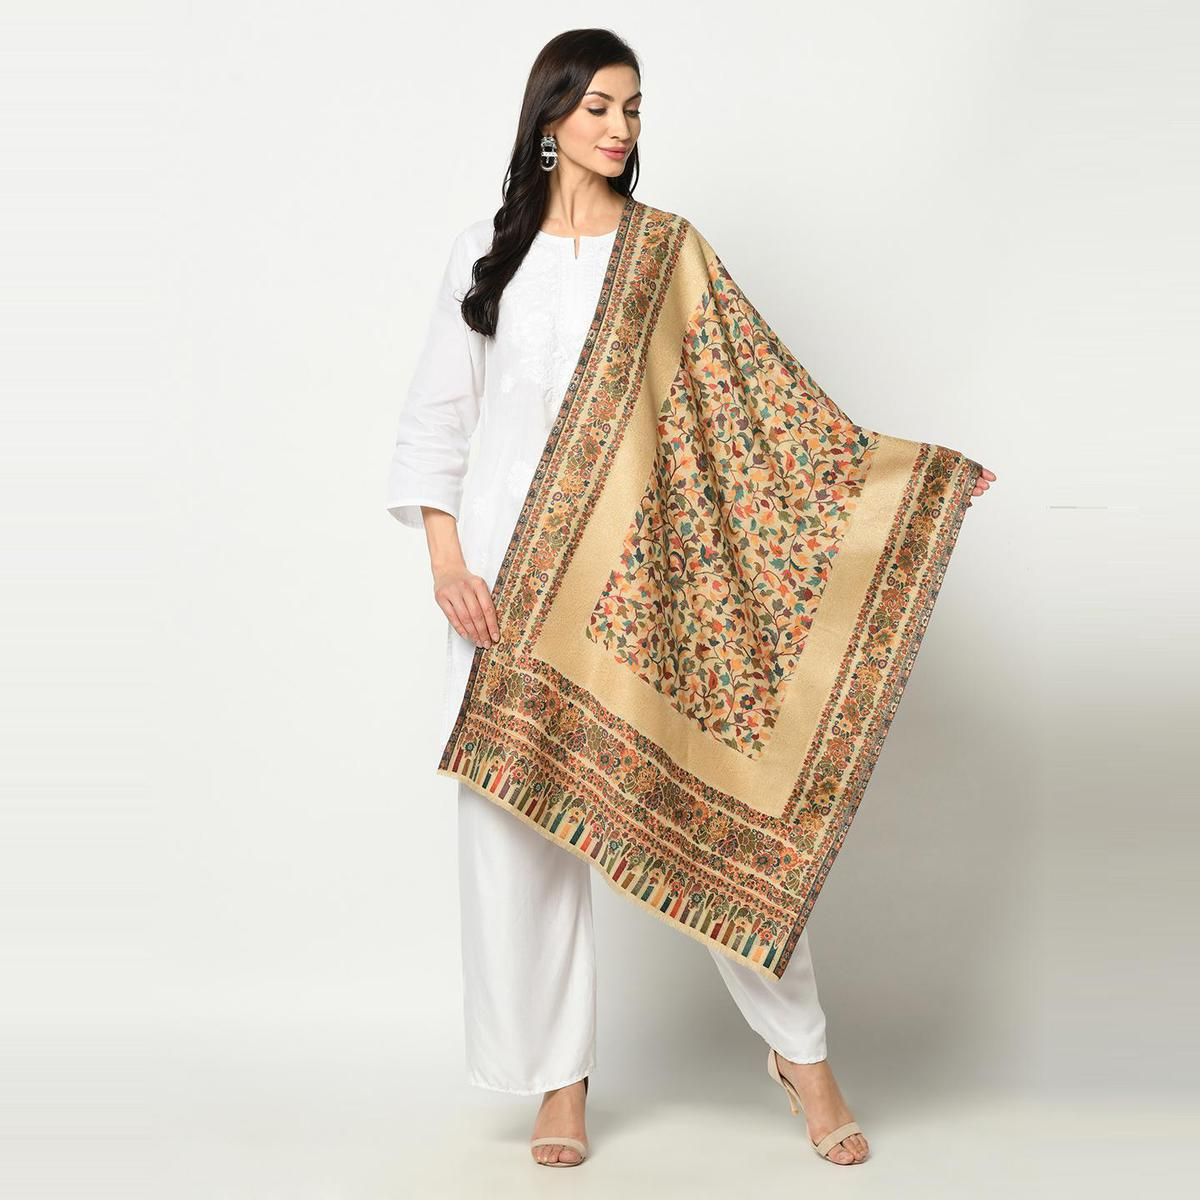 Safaa - Beige Colored Printed Poly Wool Stole